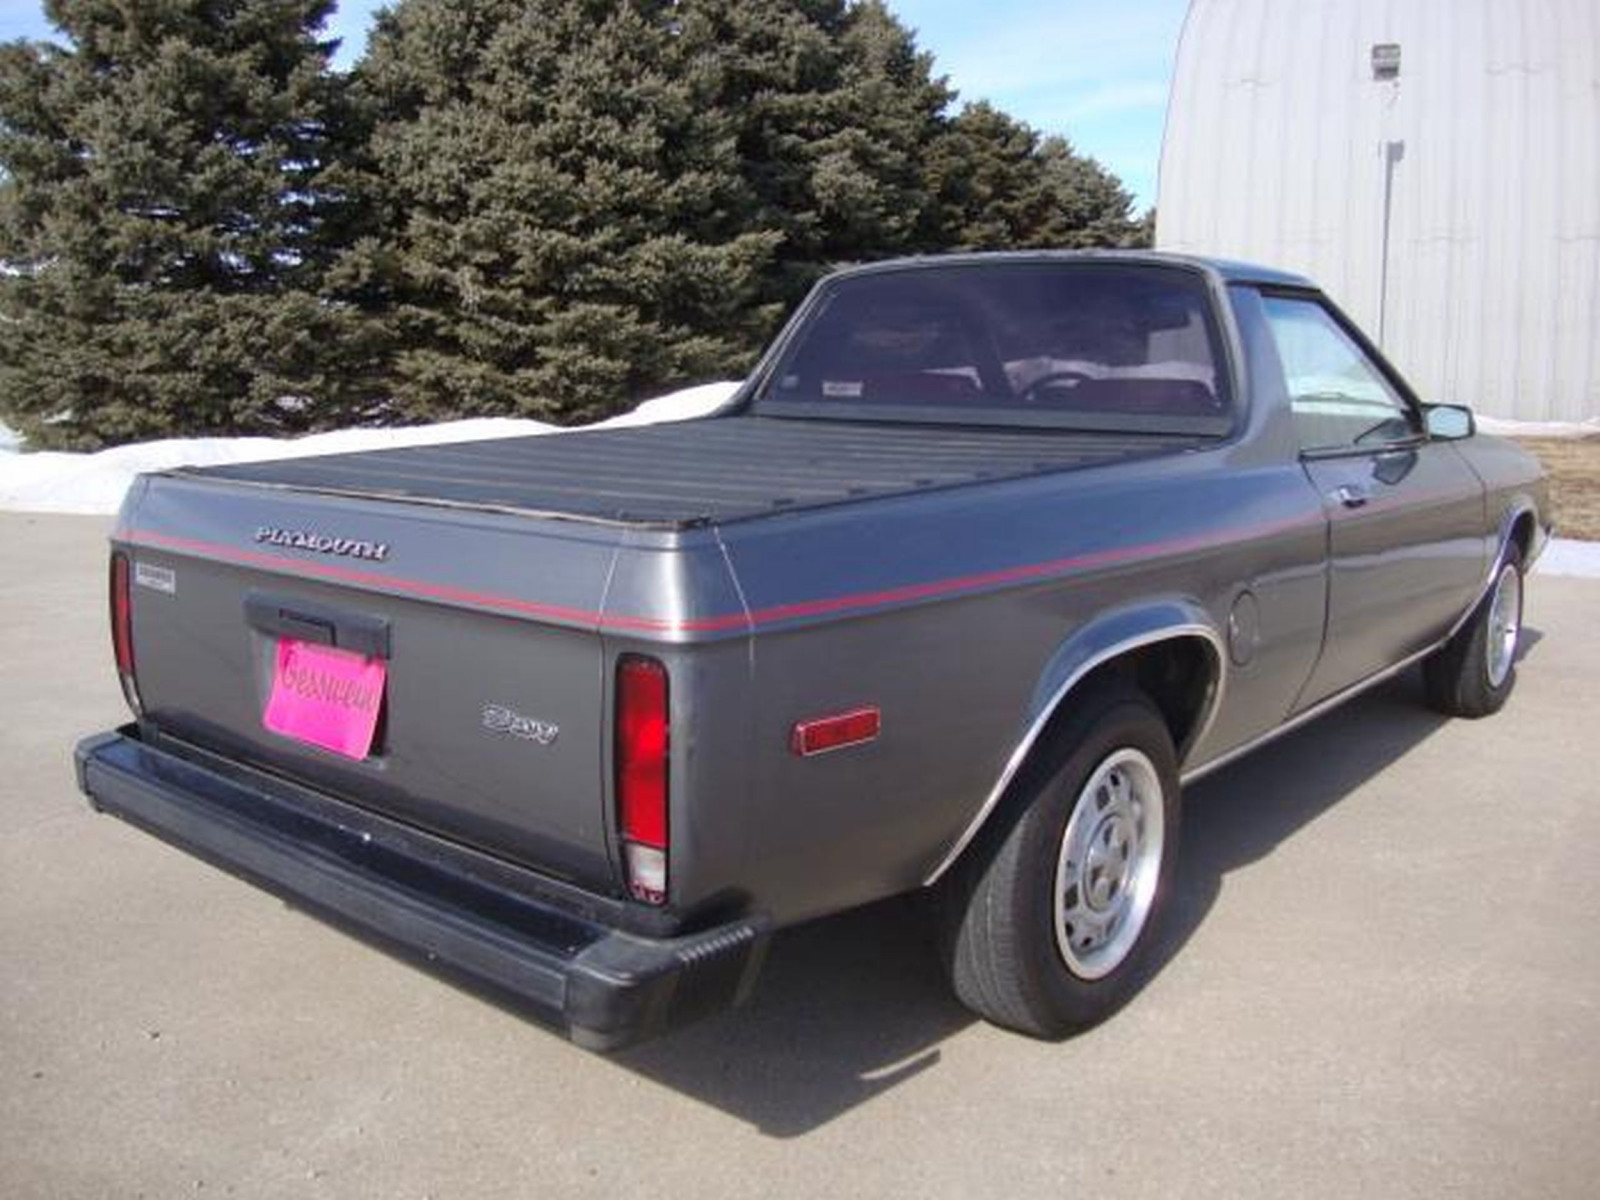 1983 Plymouth Scamp Pickup - Image 15